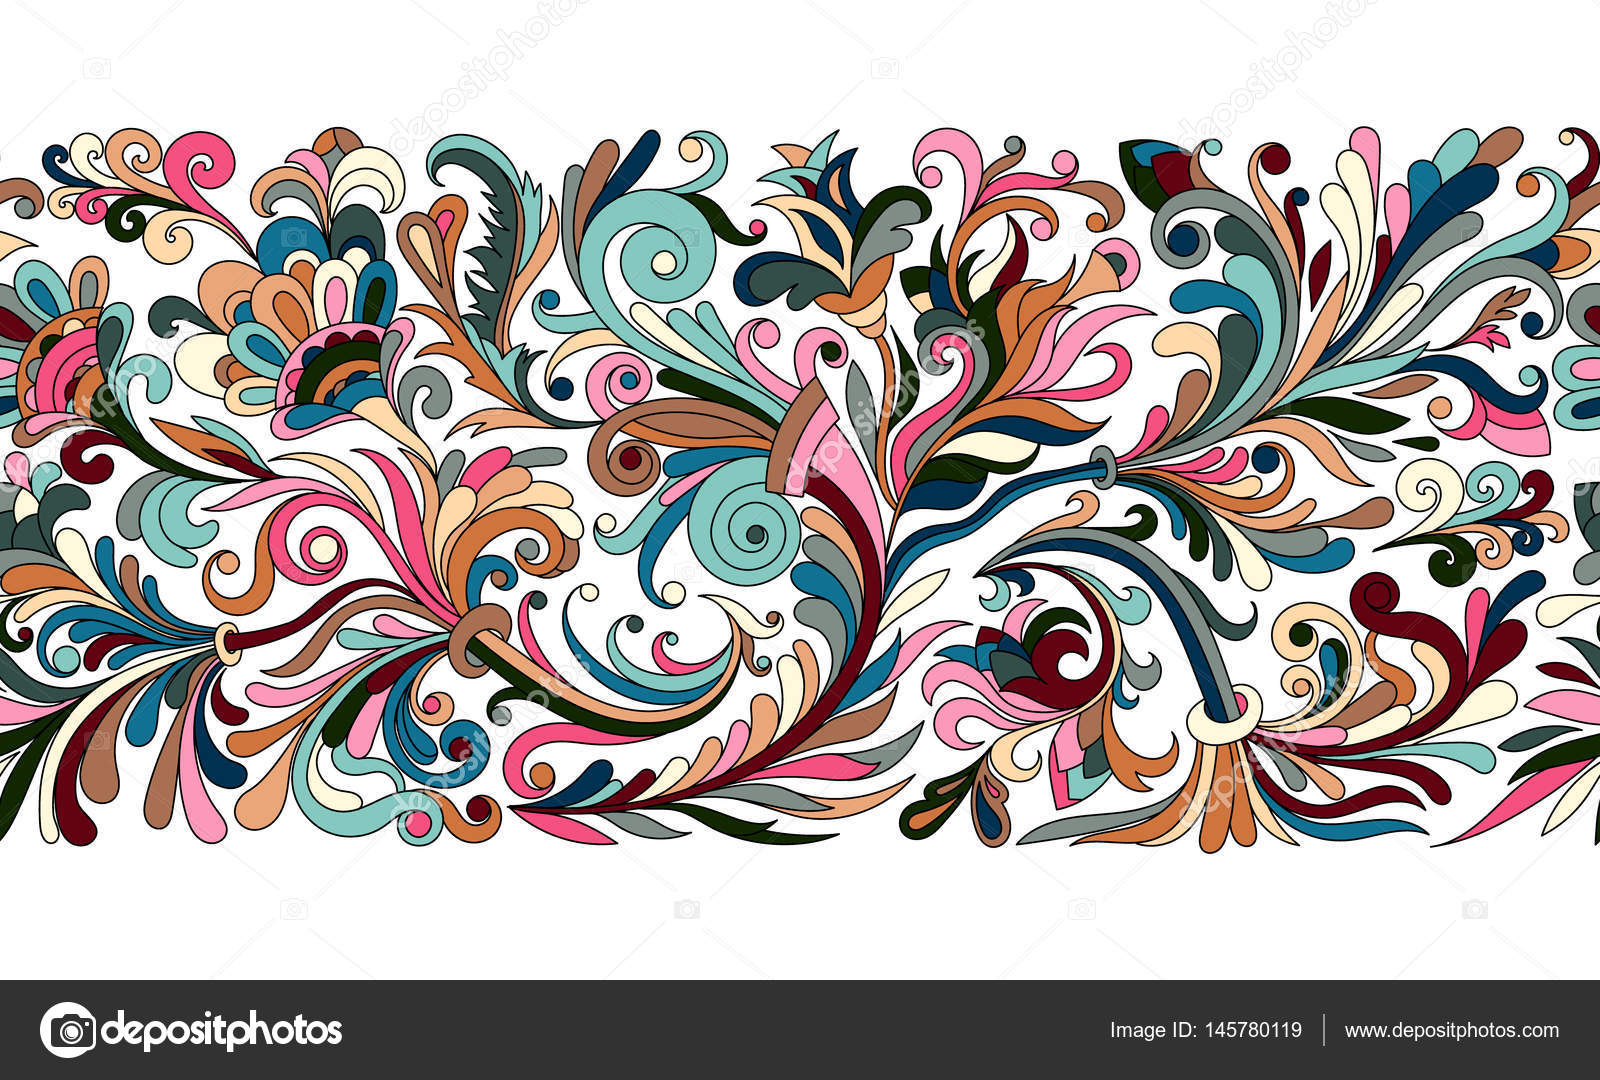 Baroque Seamless Border With Vintage Floral Ornament Vector Illustration Flower Pattern Pastel Tone Black Outline By Leezarius